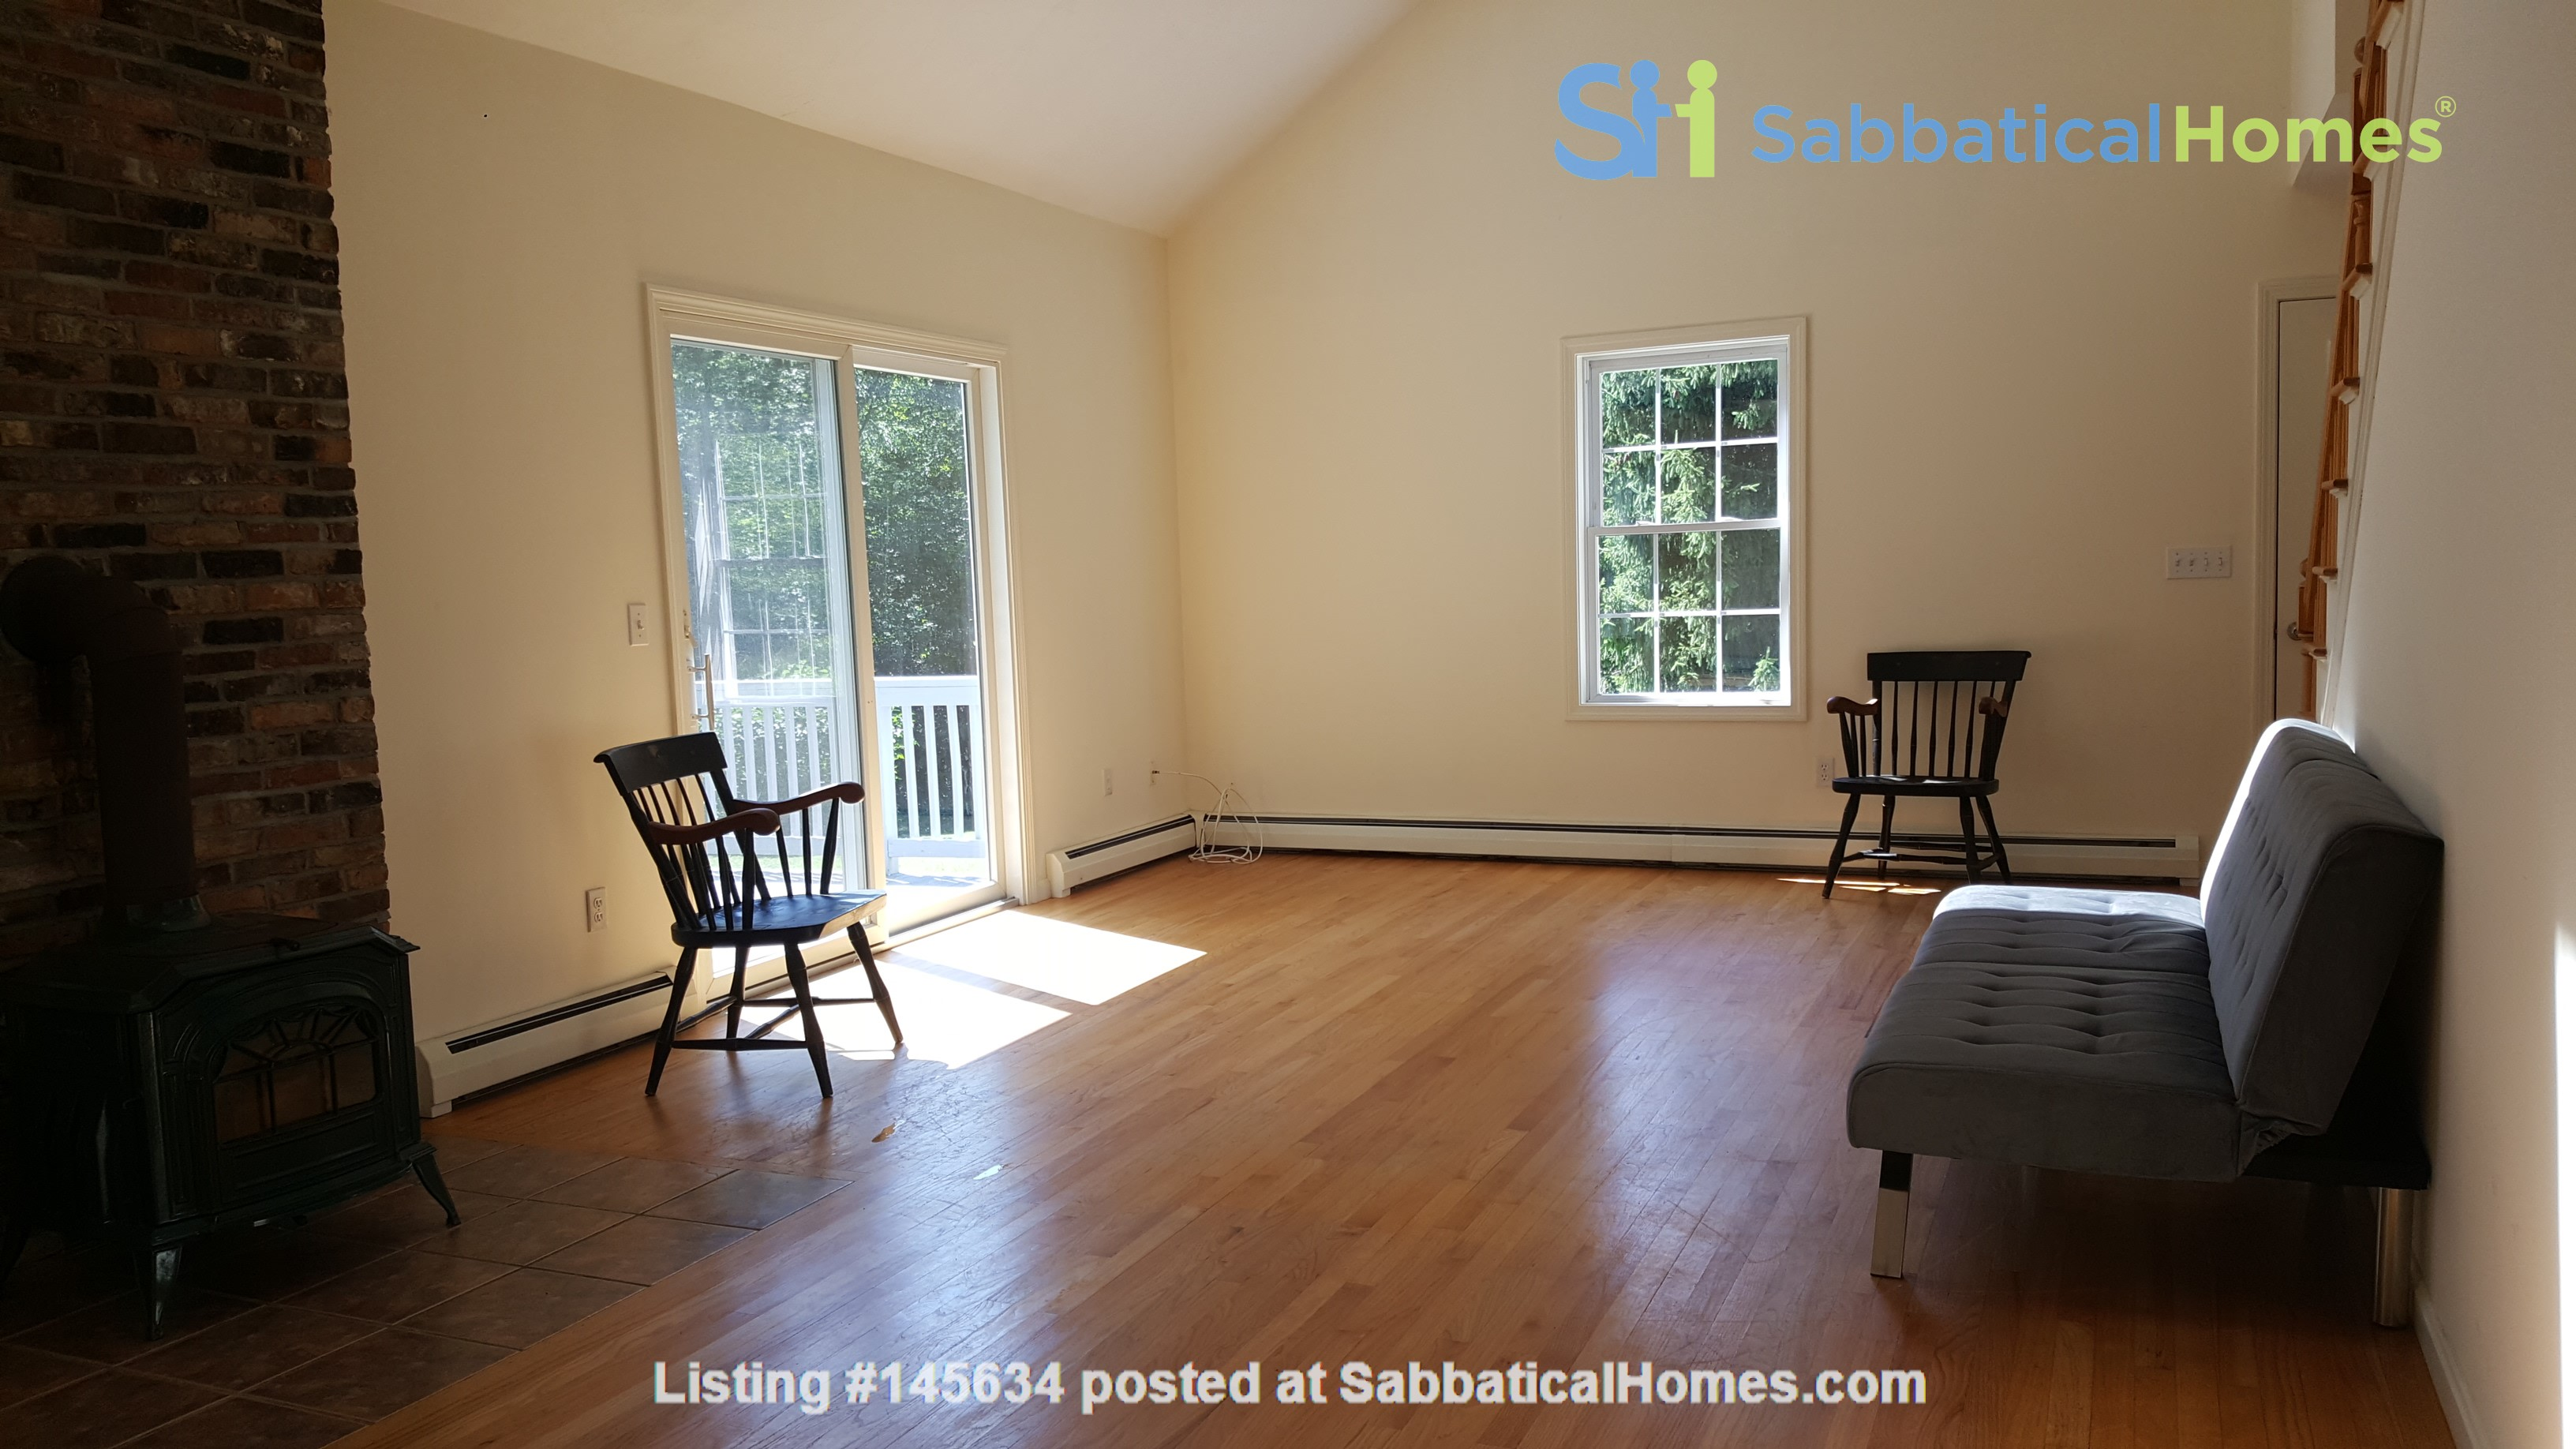 2 bedroom country house / 25 miles North of Boston and Cambridge Home Rental in Andover, Massachusetts, United States 5